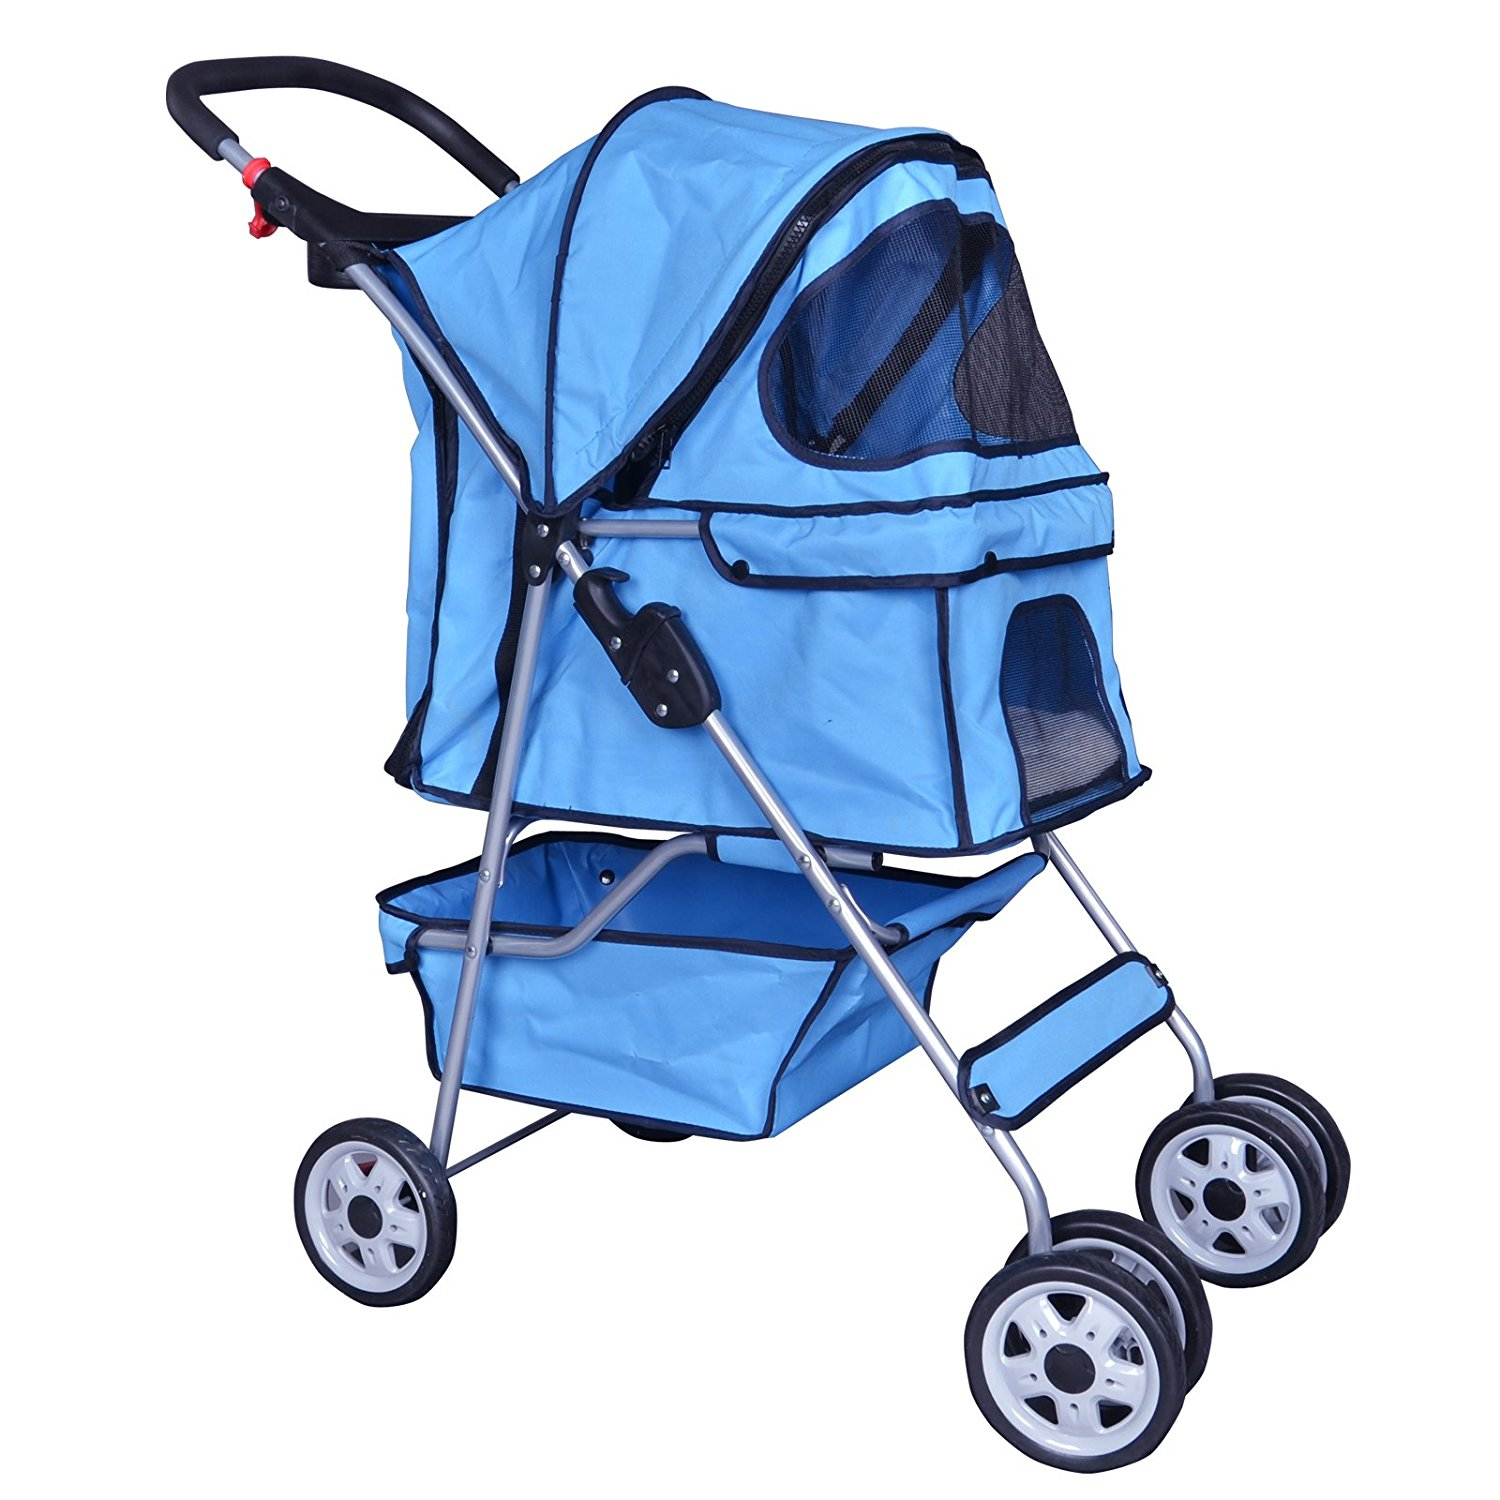 BestPet Blue 4 Wheels Pet Stroller Cat Dog Cage Stroller Travel Folding Carri... by